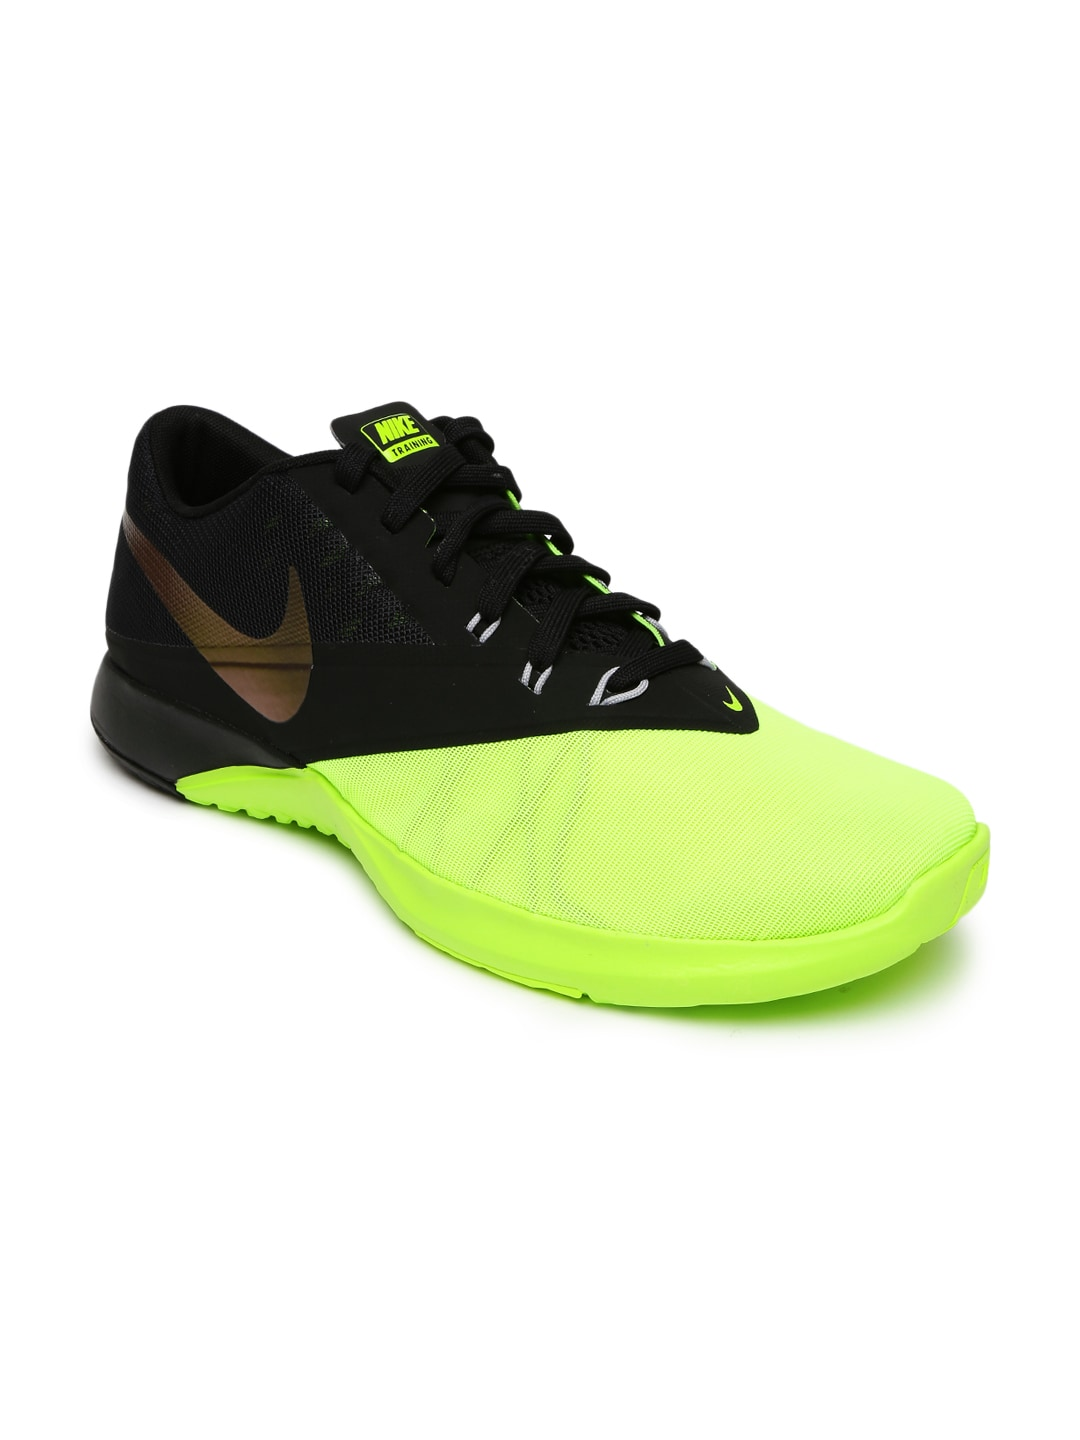 new styles 2844c 323b5 Nike 844794-701 Men Fluorescent Green And Black Fs Lite 4 Training Shoes-  Price in India